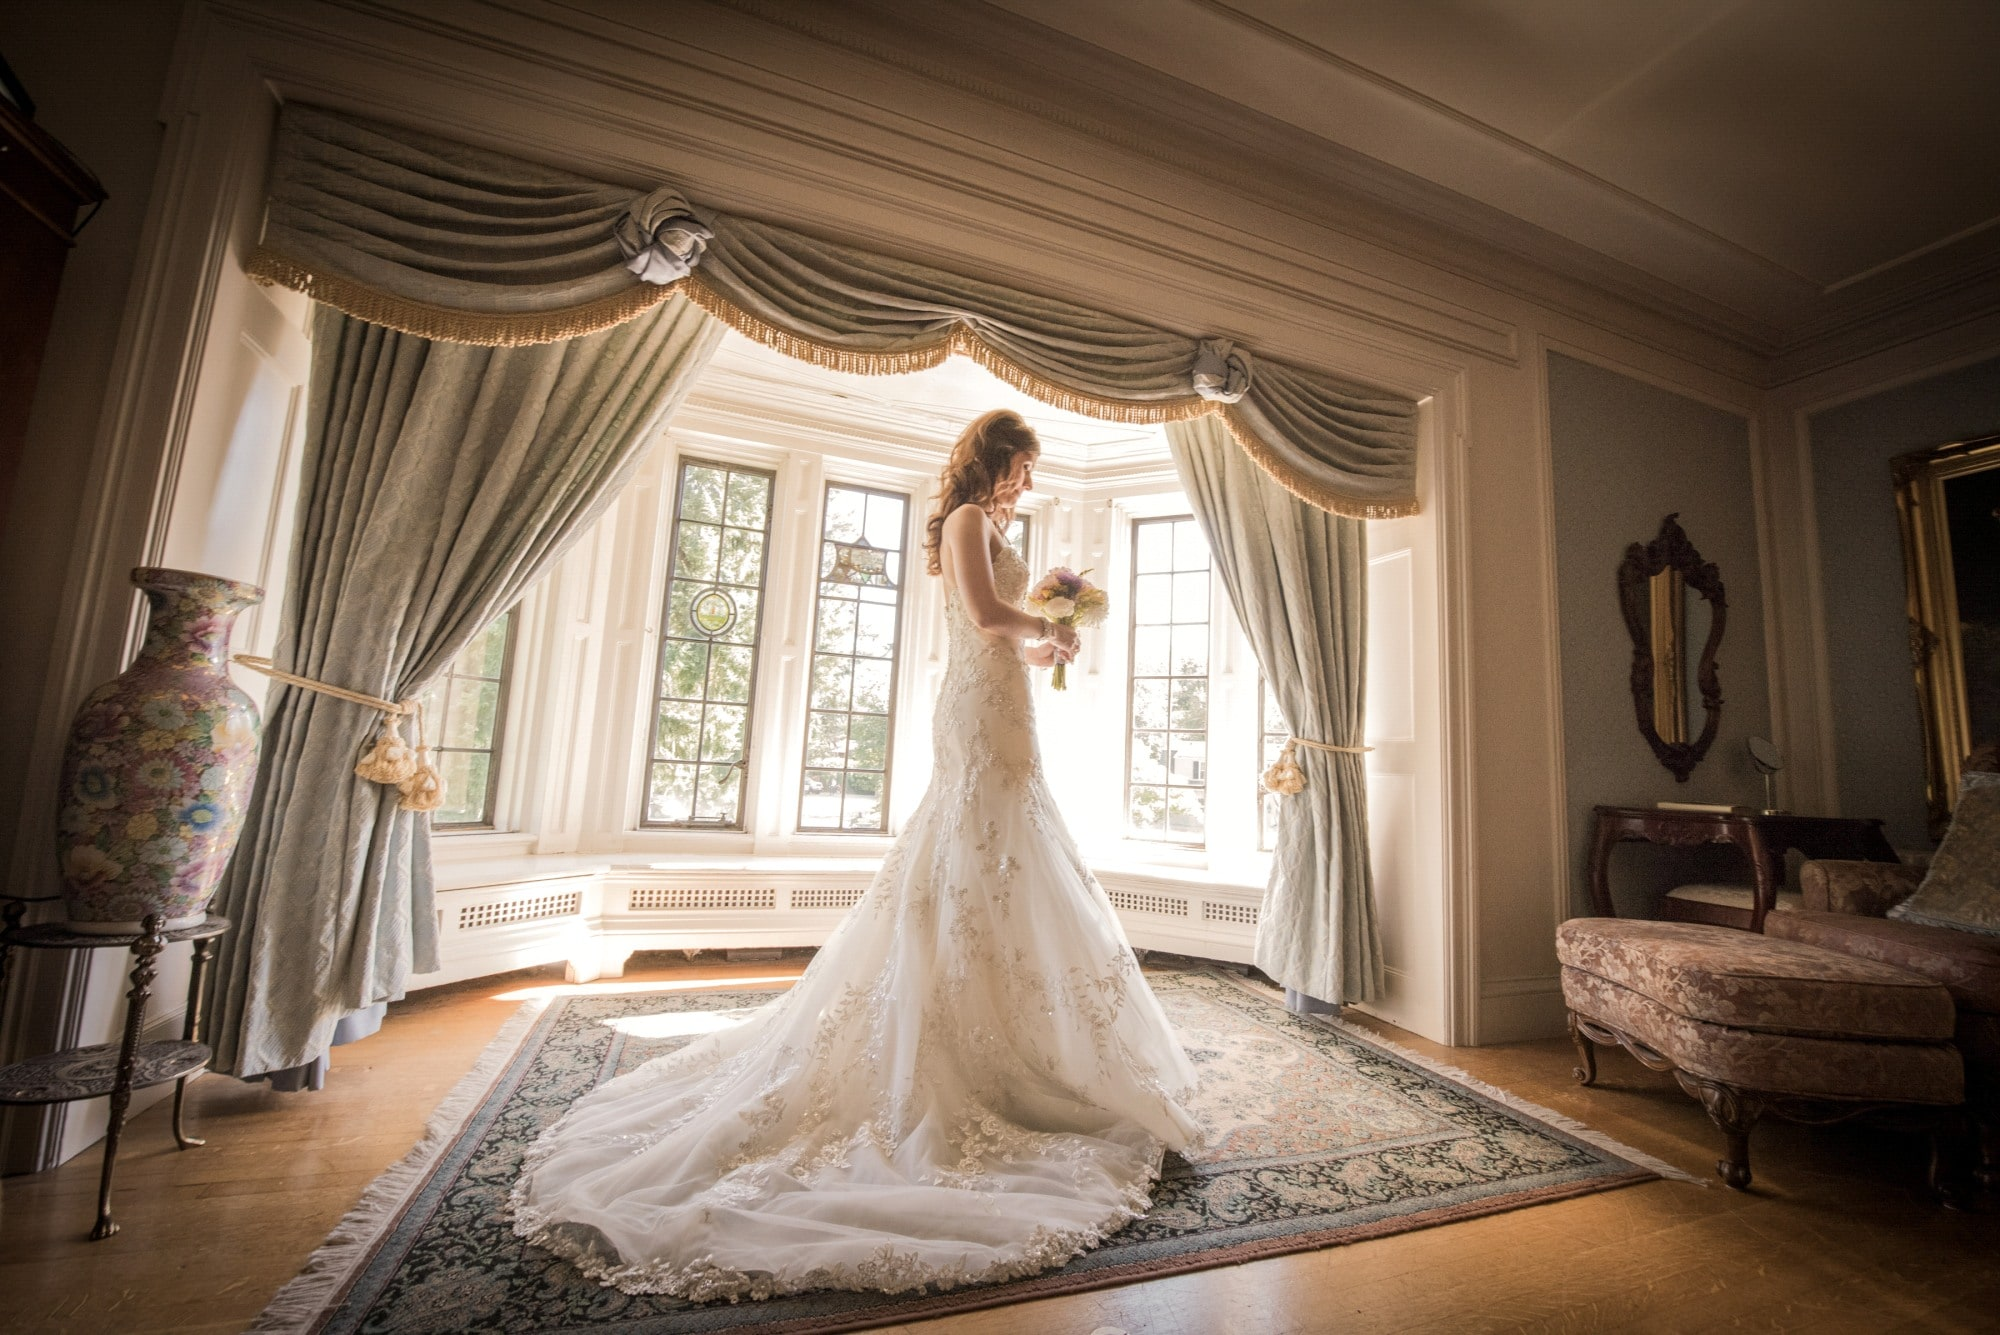 woman in white wedding dress standing on brown and white area rug